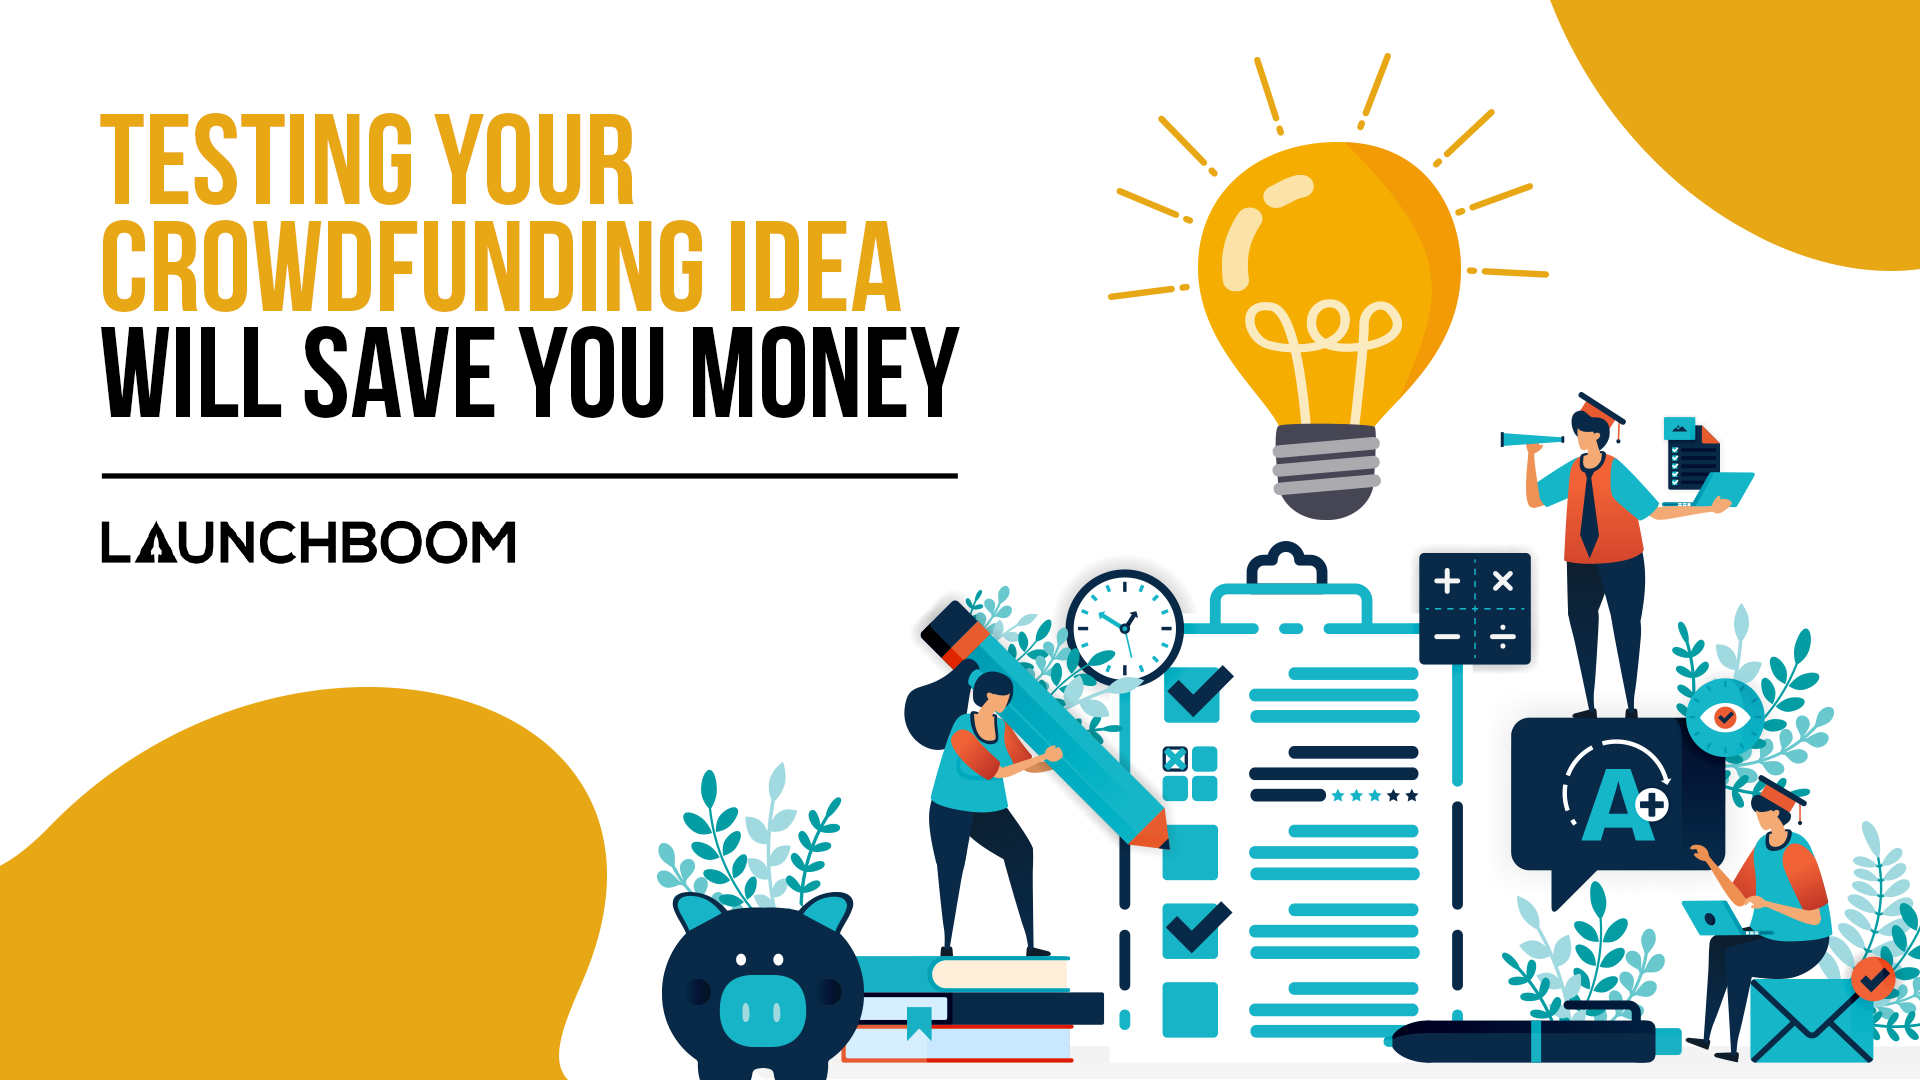 Testing your crowdfunding idea will save you money